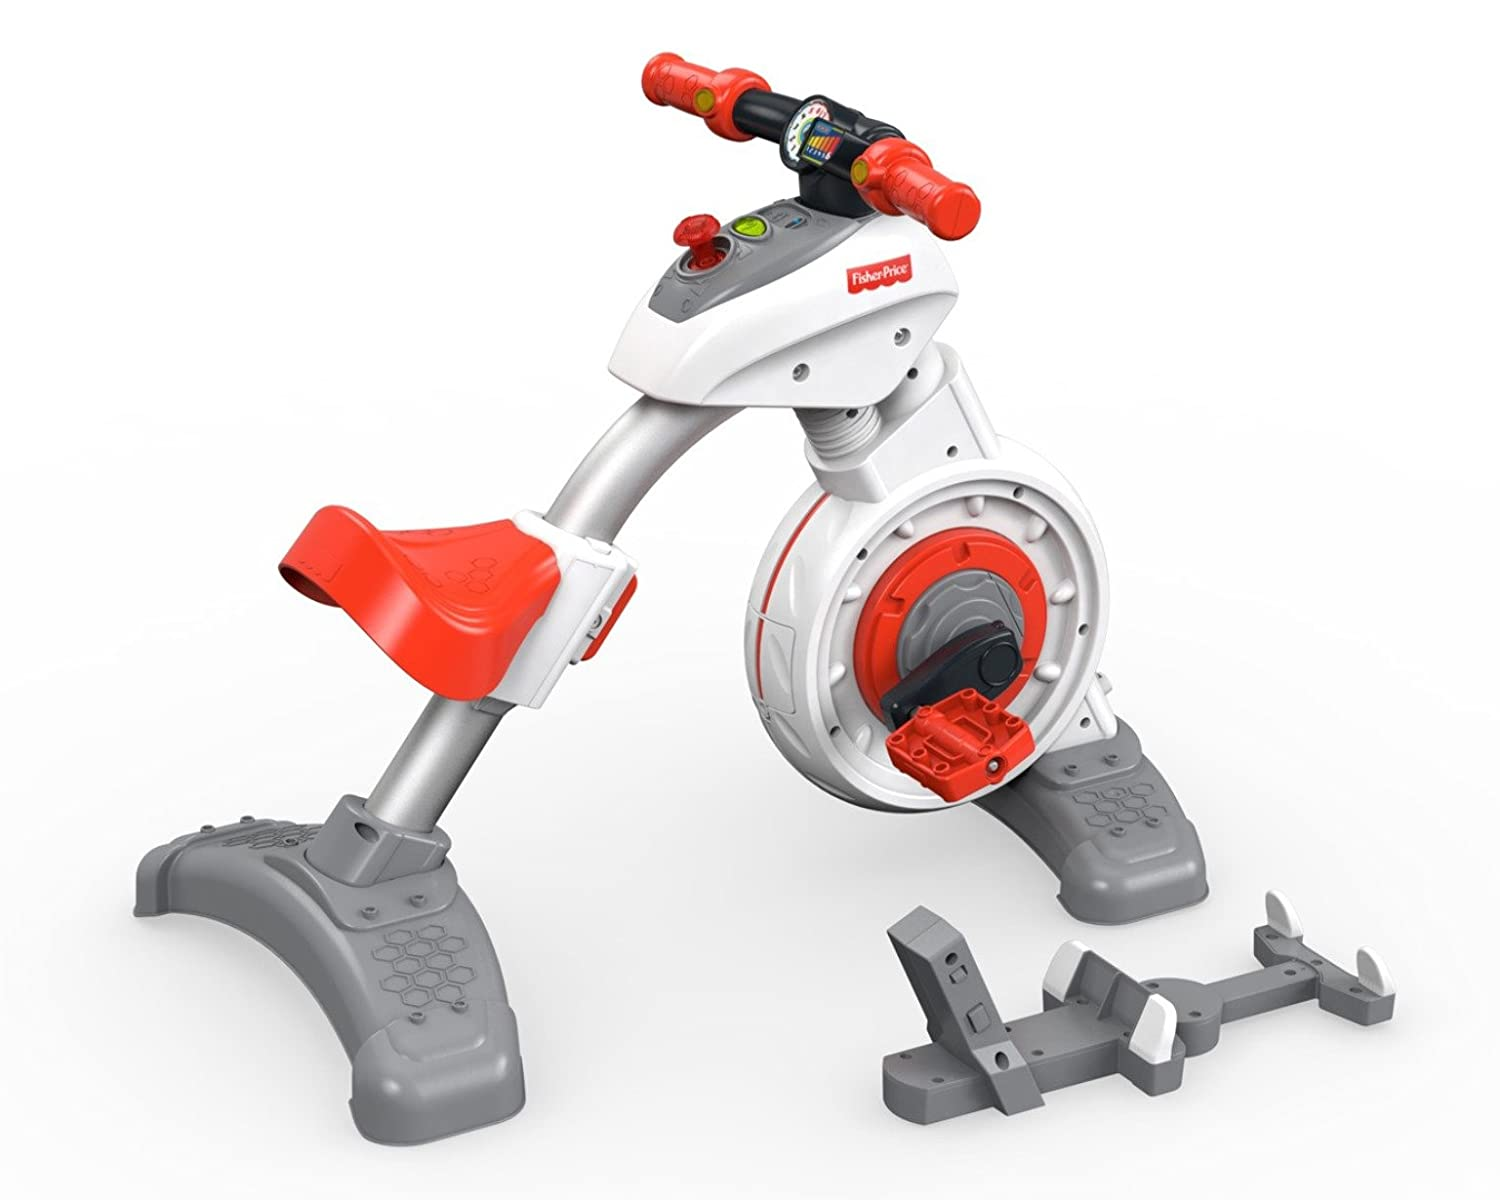 You can buy the Fisher-Price Think & Learn Smart Cycle Toy here